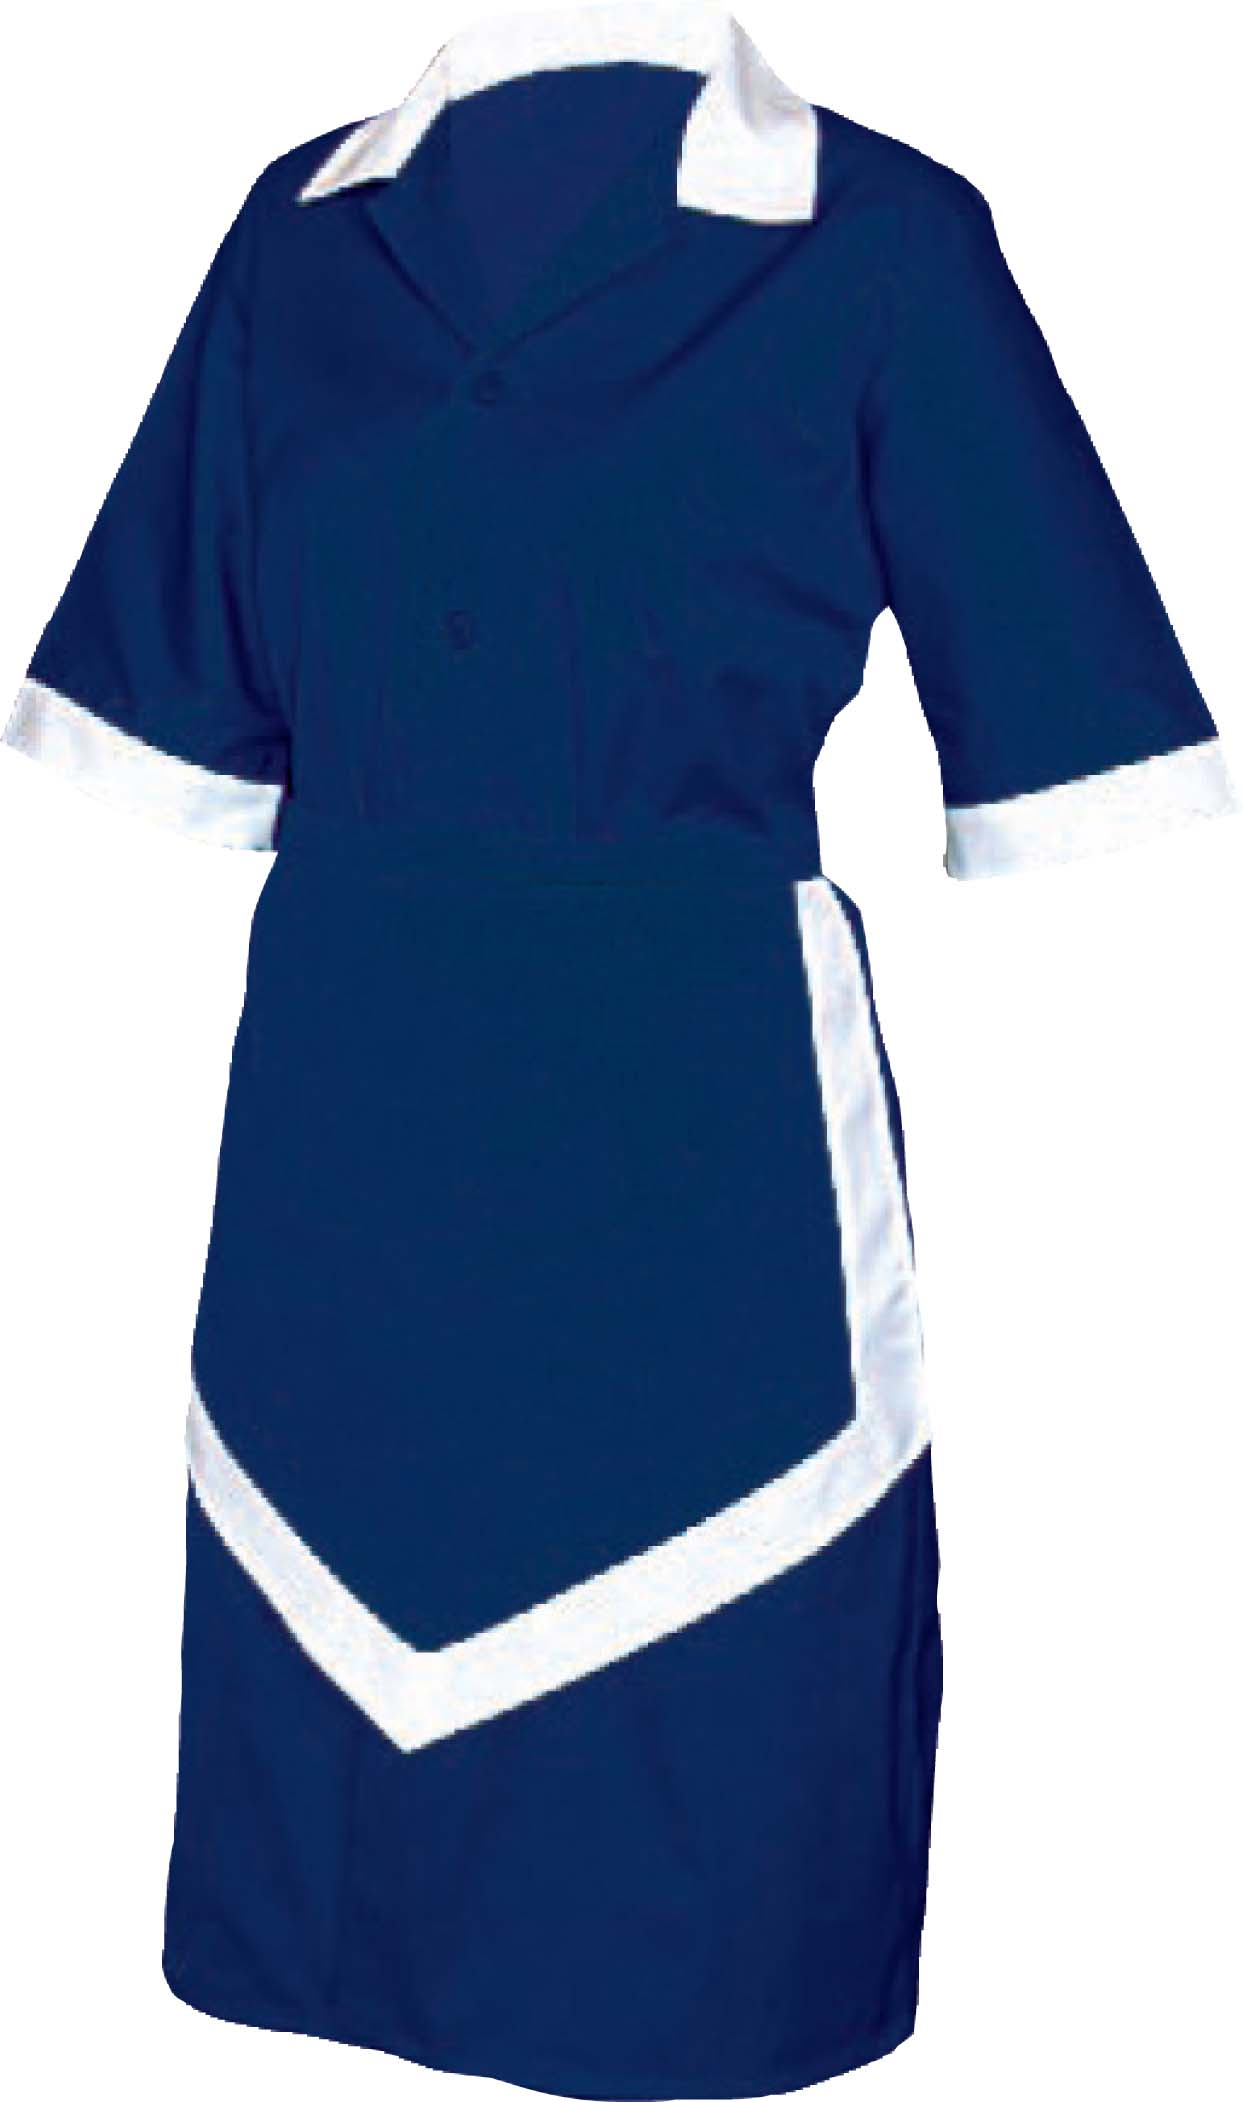 LADIES HOUSEKEEPING 3PC- NAVY AND WHITE - X LARGE